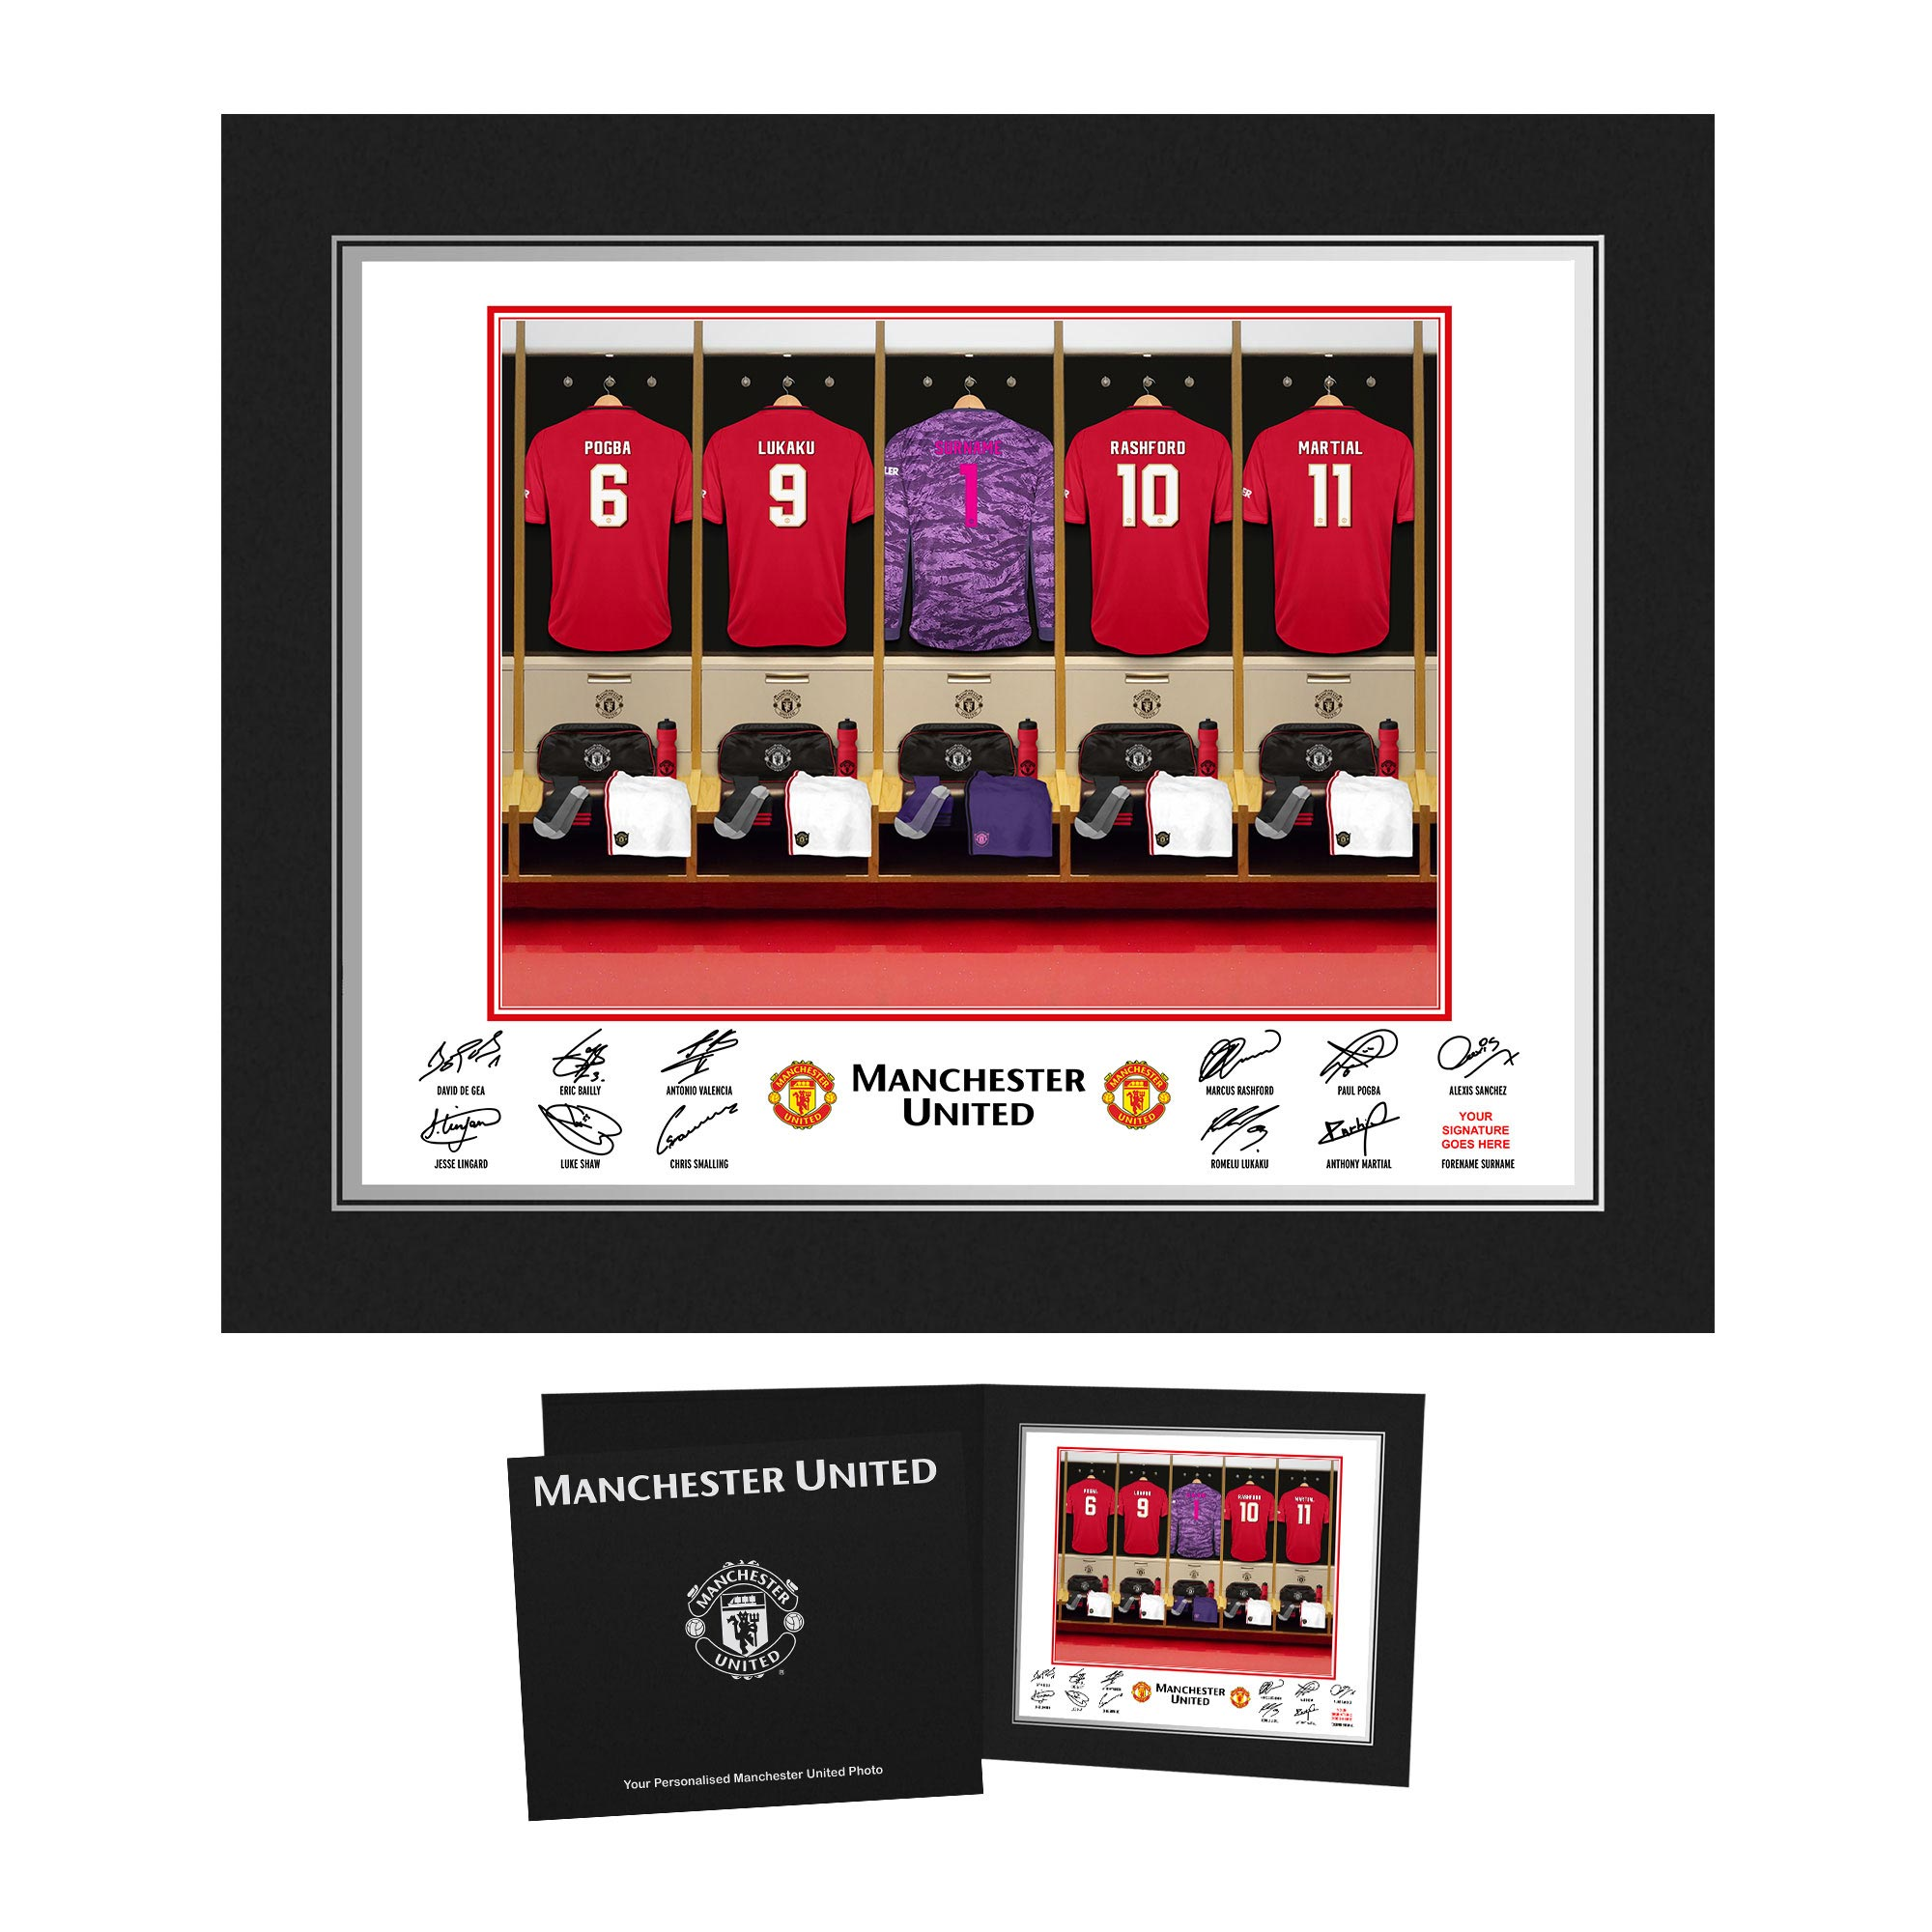 Manchester United Personalised Goal Keeper Dressing Room Photo in Presentation Folder